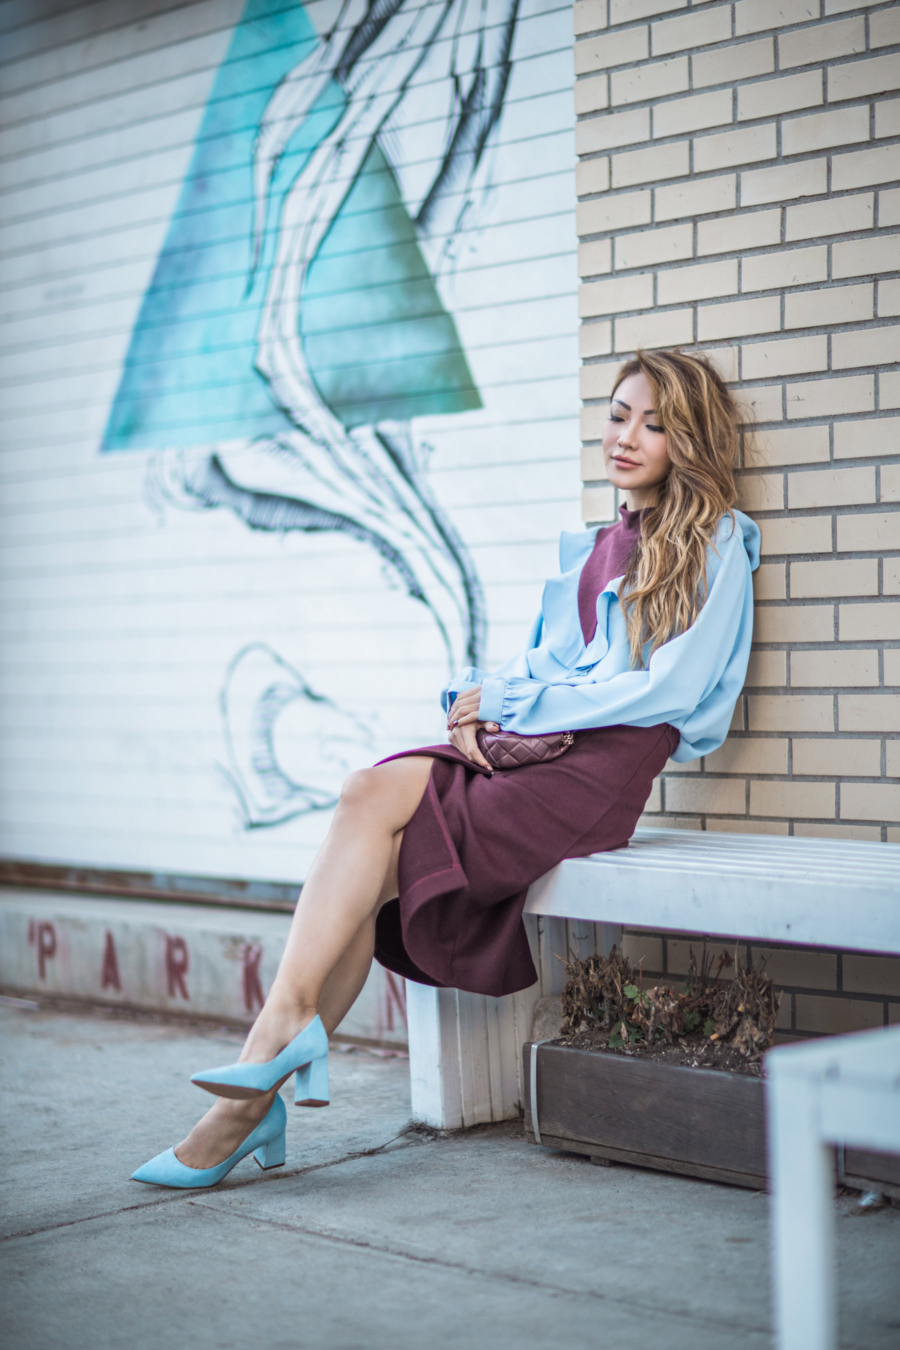 Blouse and Skirt - Summer Work Outfits That Won't Make You Break A Sweat // NotJessFashion.com